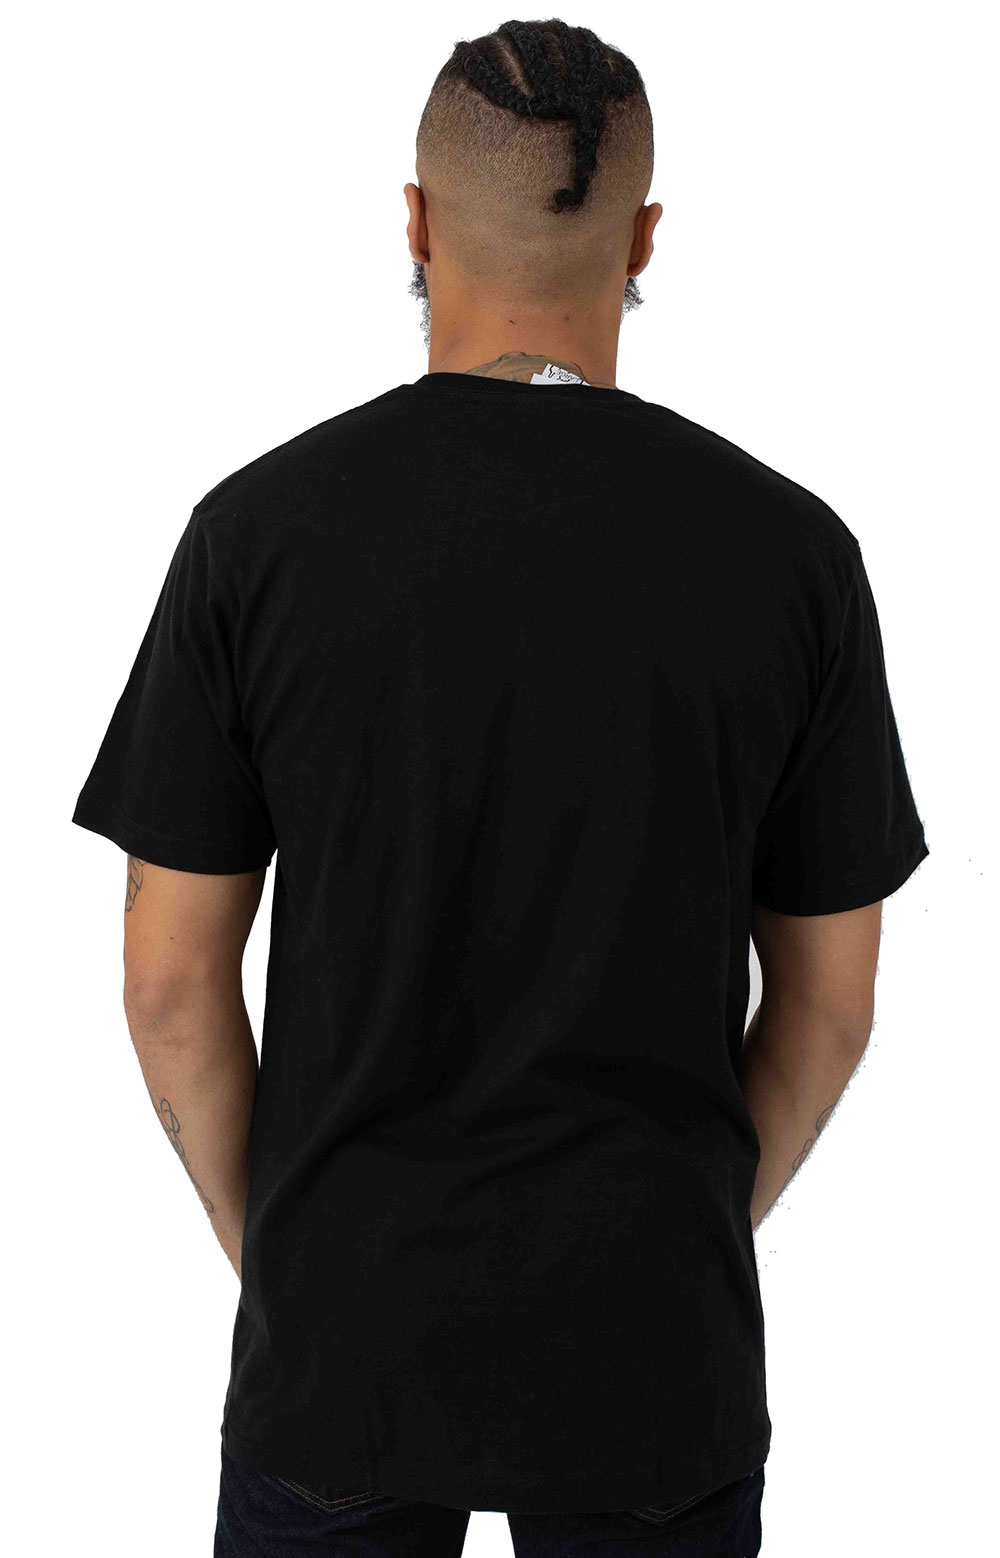 Nermio T-Shirt - Black 3